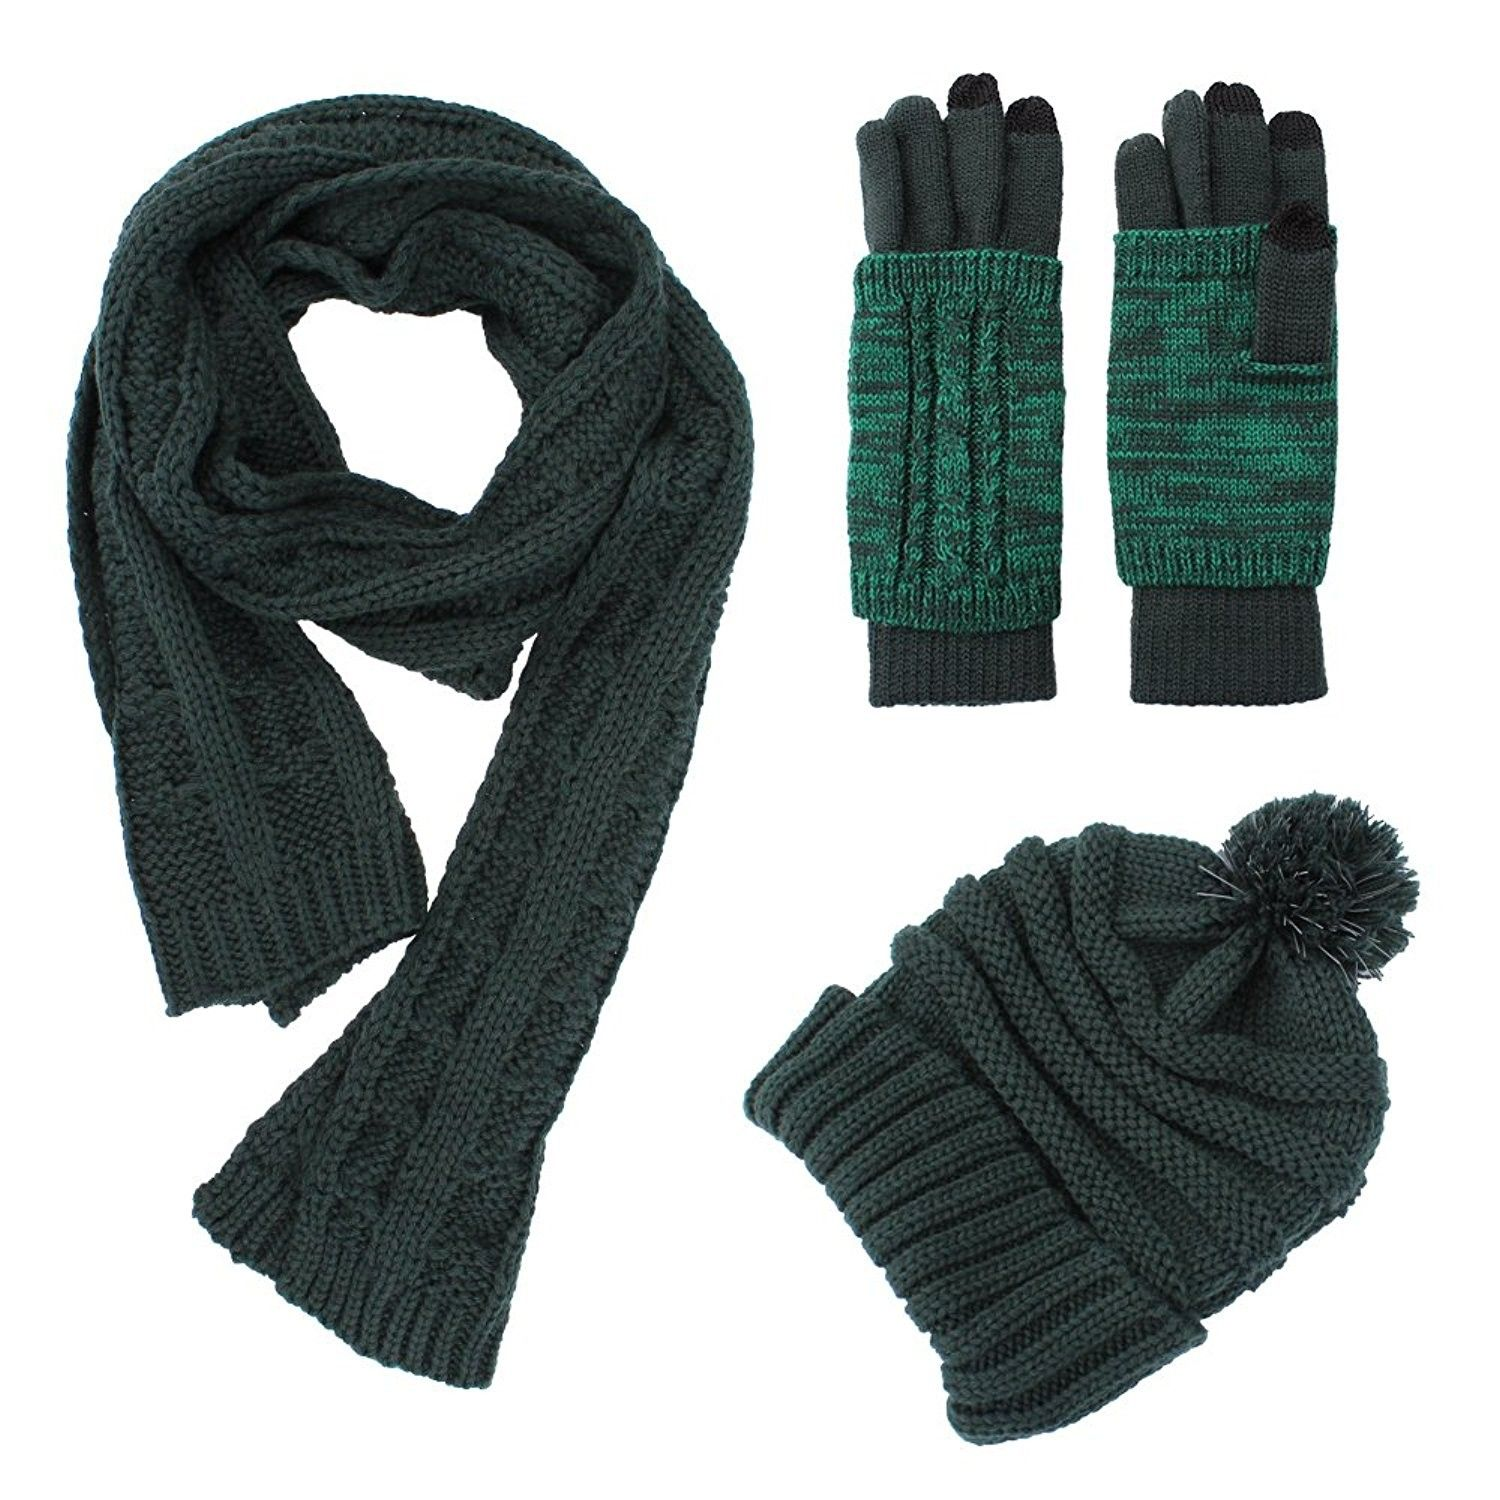 Knit Hat Scarf Gloves Set Women Men Unisex Cable Knit Winter Cold Weather Gift Set Forest Green Cn187mxx89u Winter Knits Hat Scarf Gloves Set Cold Weather Scarf